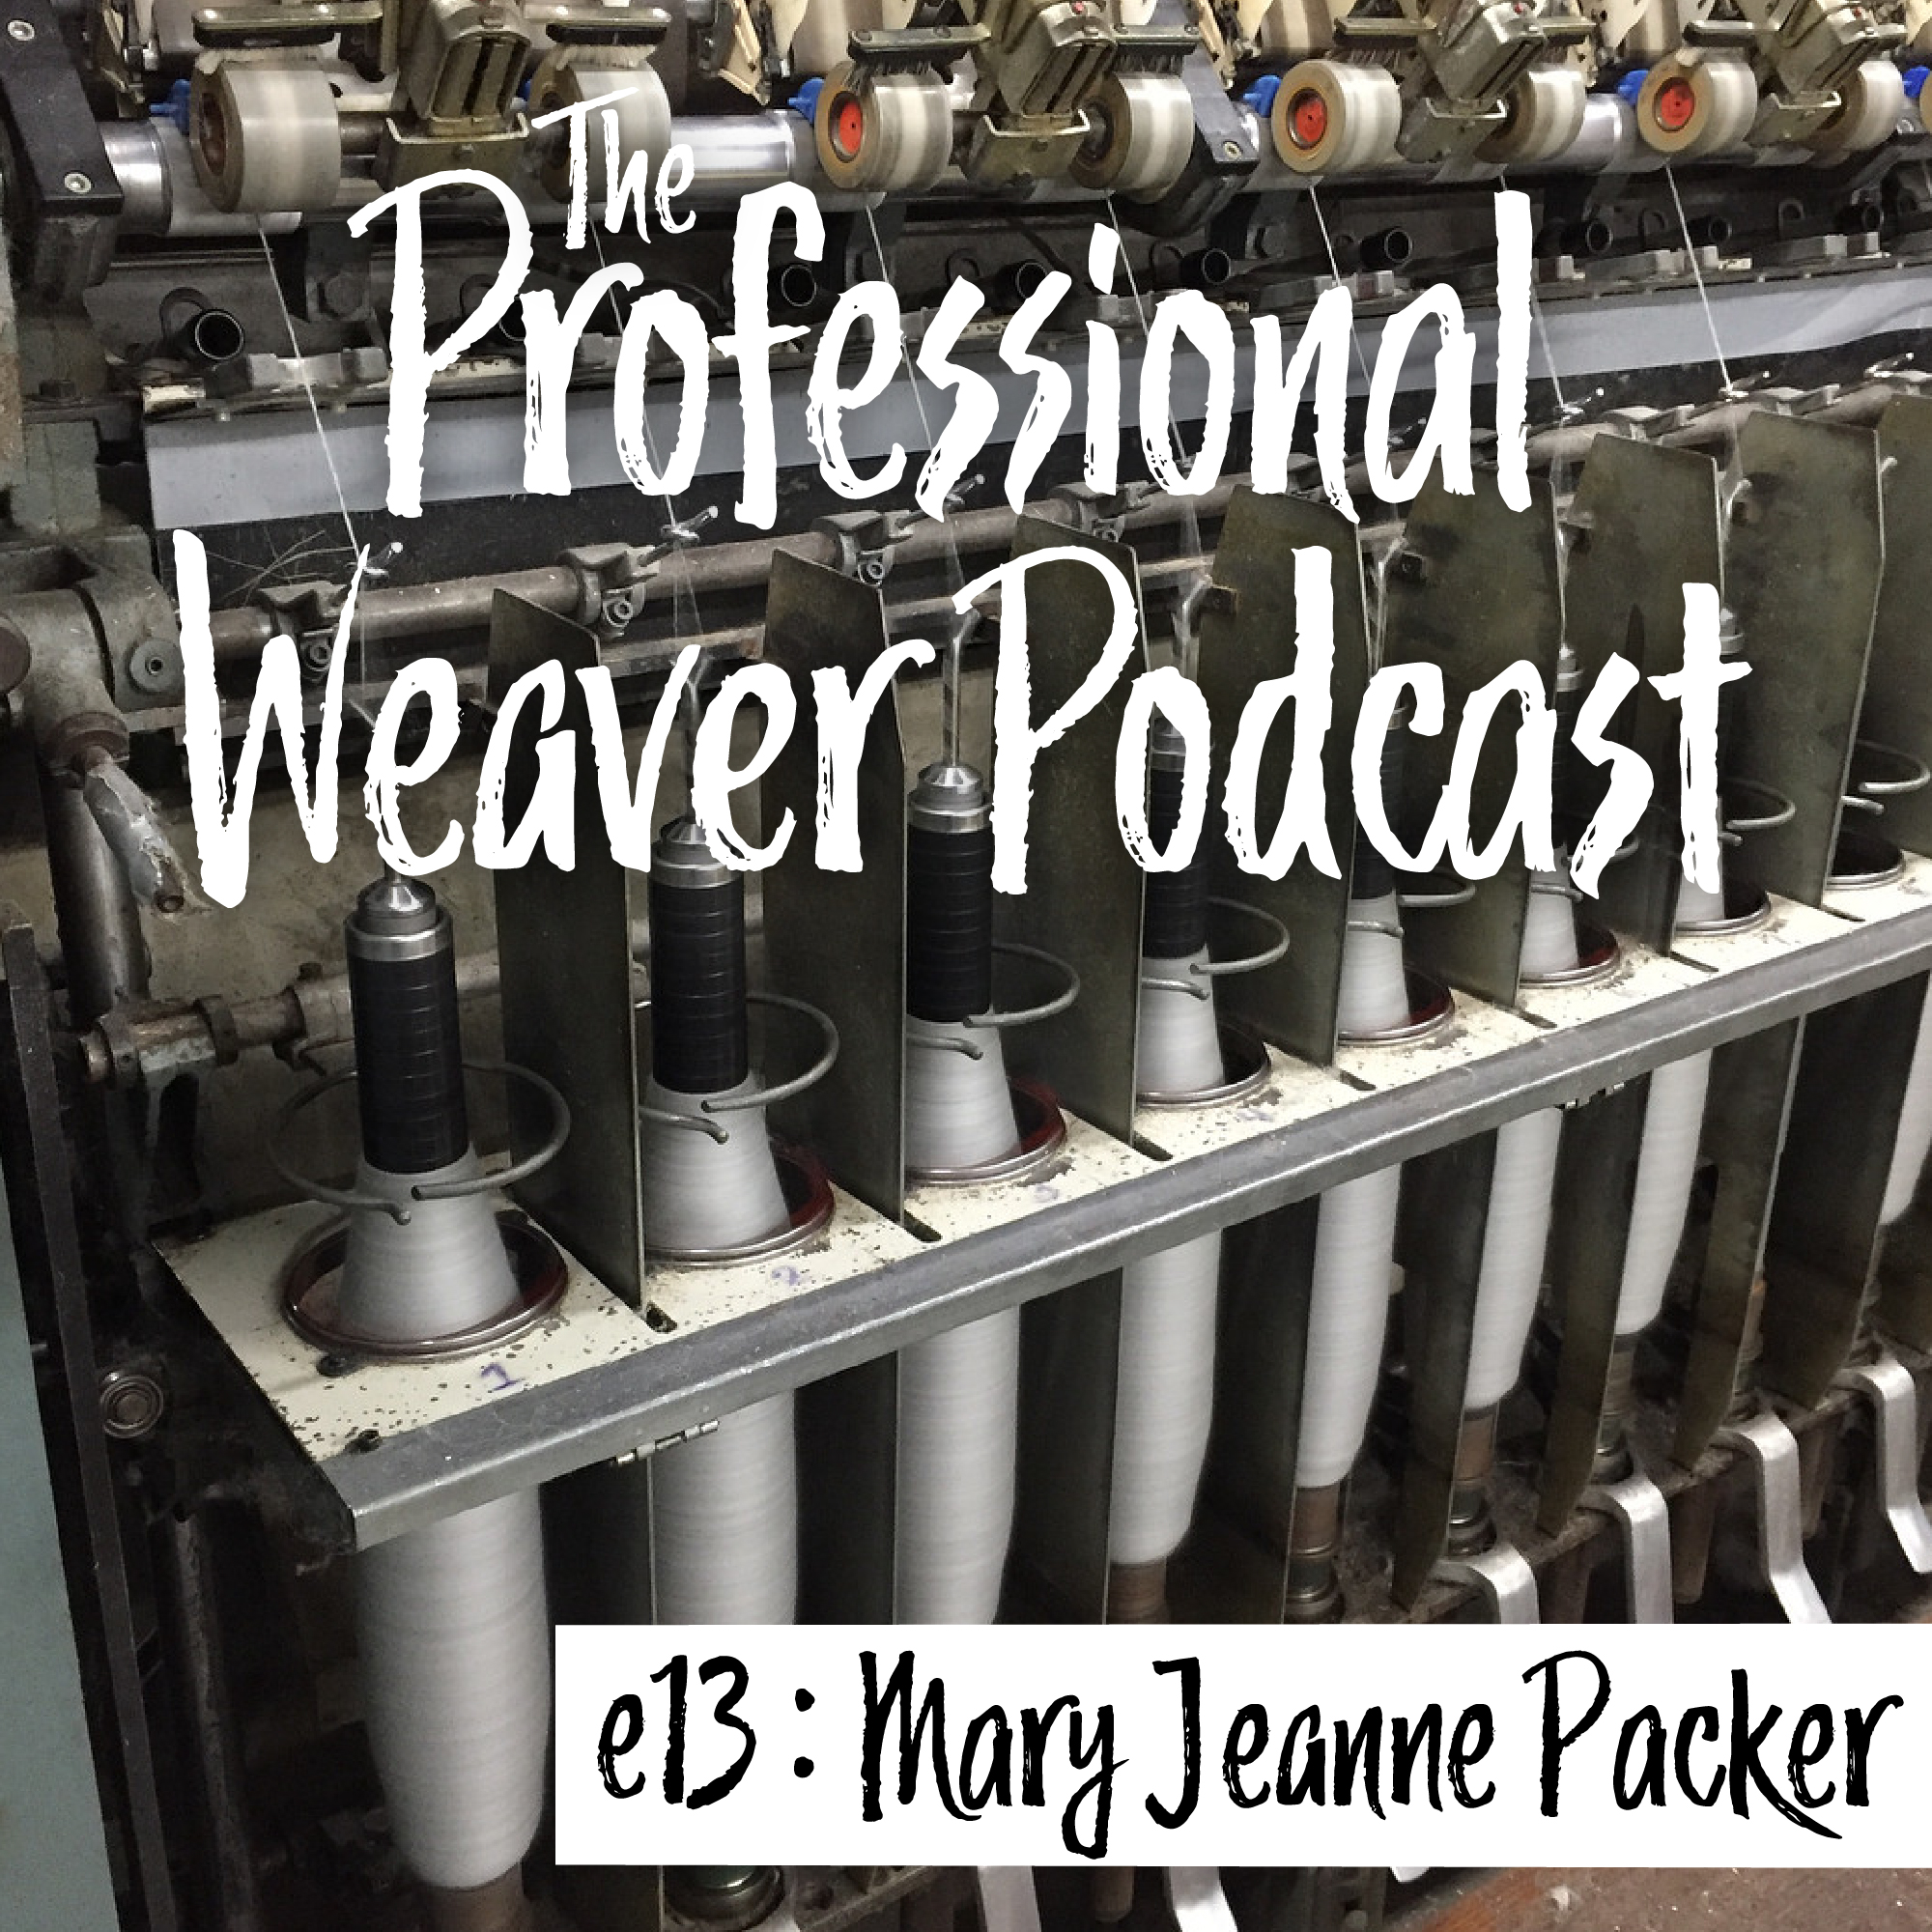 Professional Weaver Podcast : Episode 13 : Mary Jeanne Packer